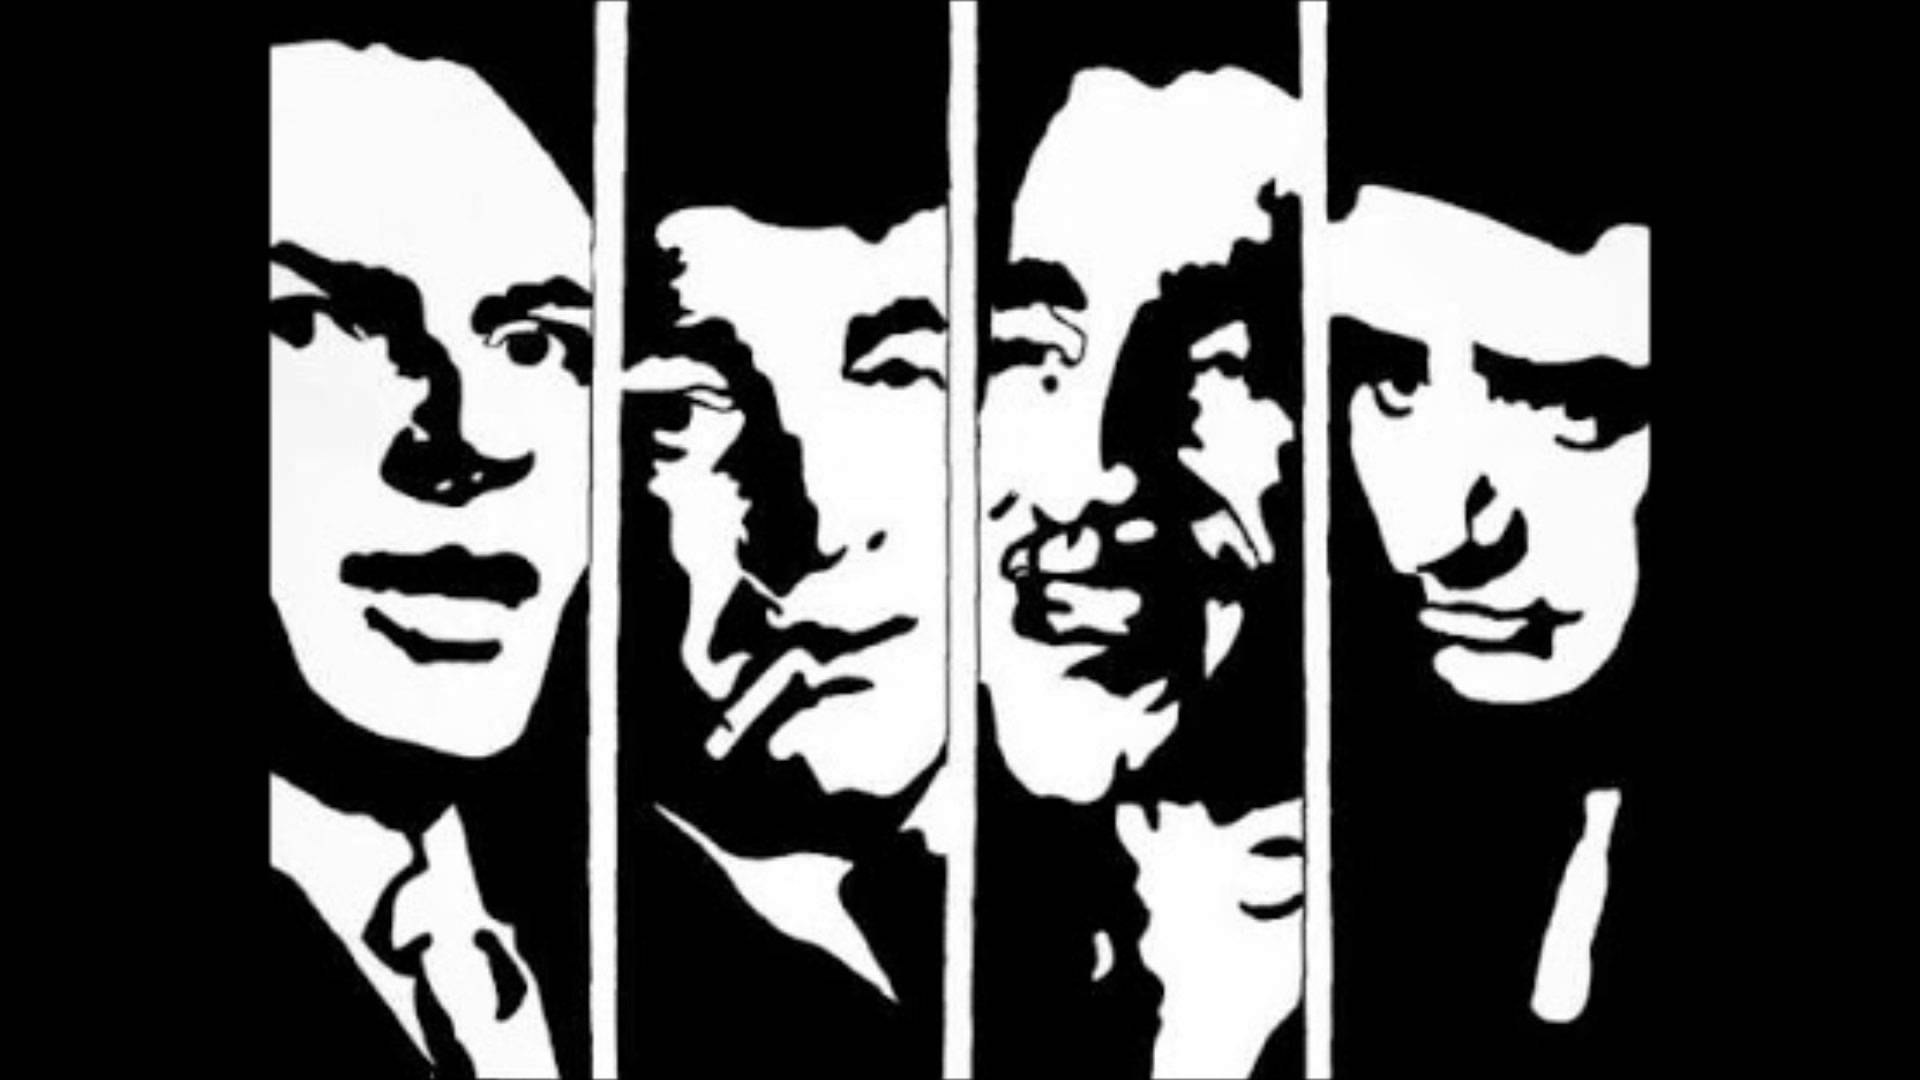 The Rat Pack Silhouette.